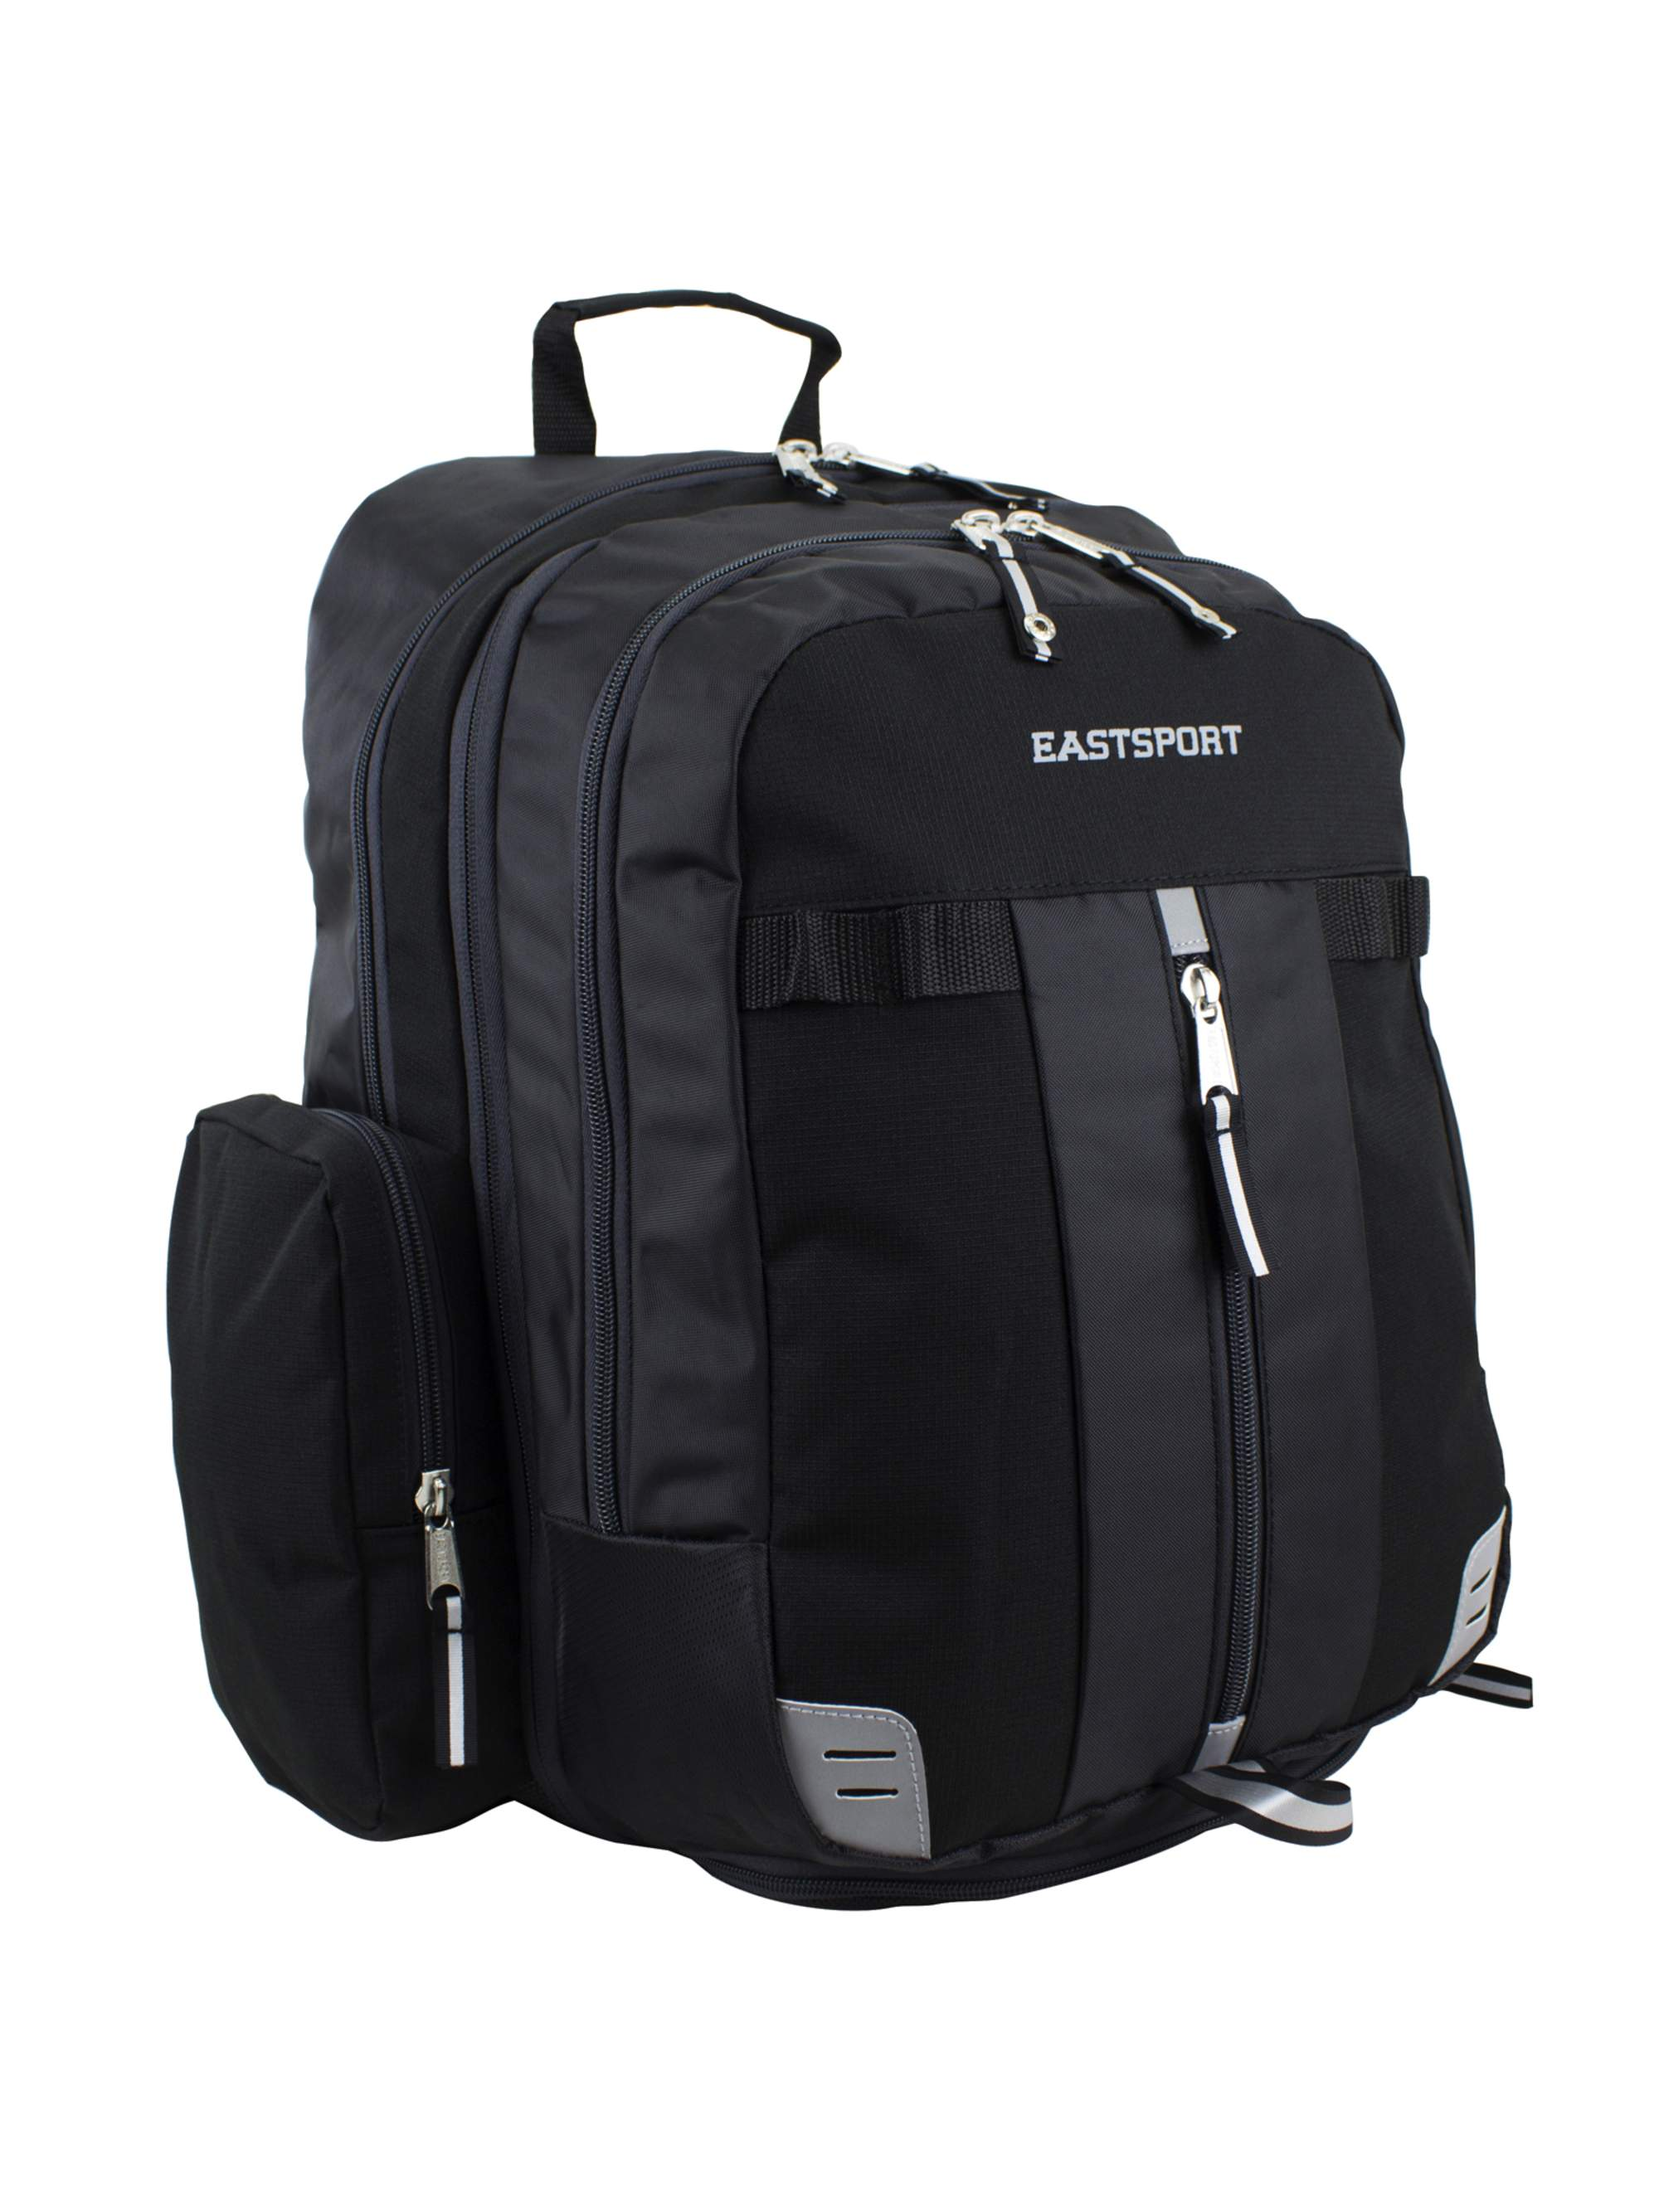 Eastsport Titan Backpack by Bijoux International